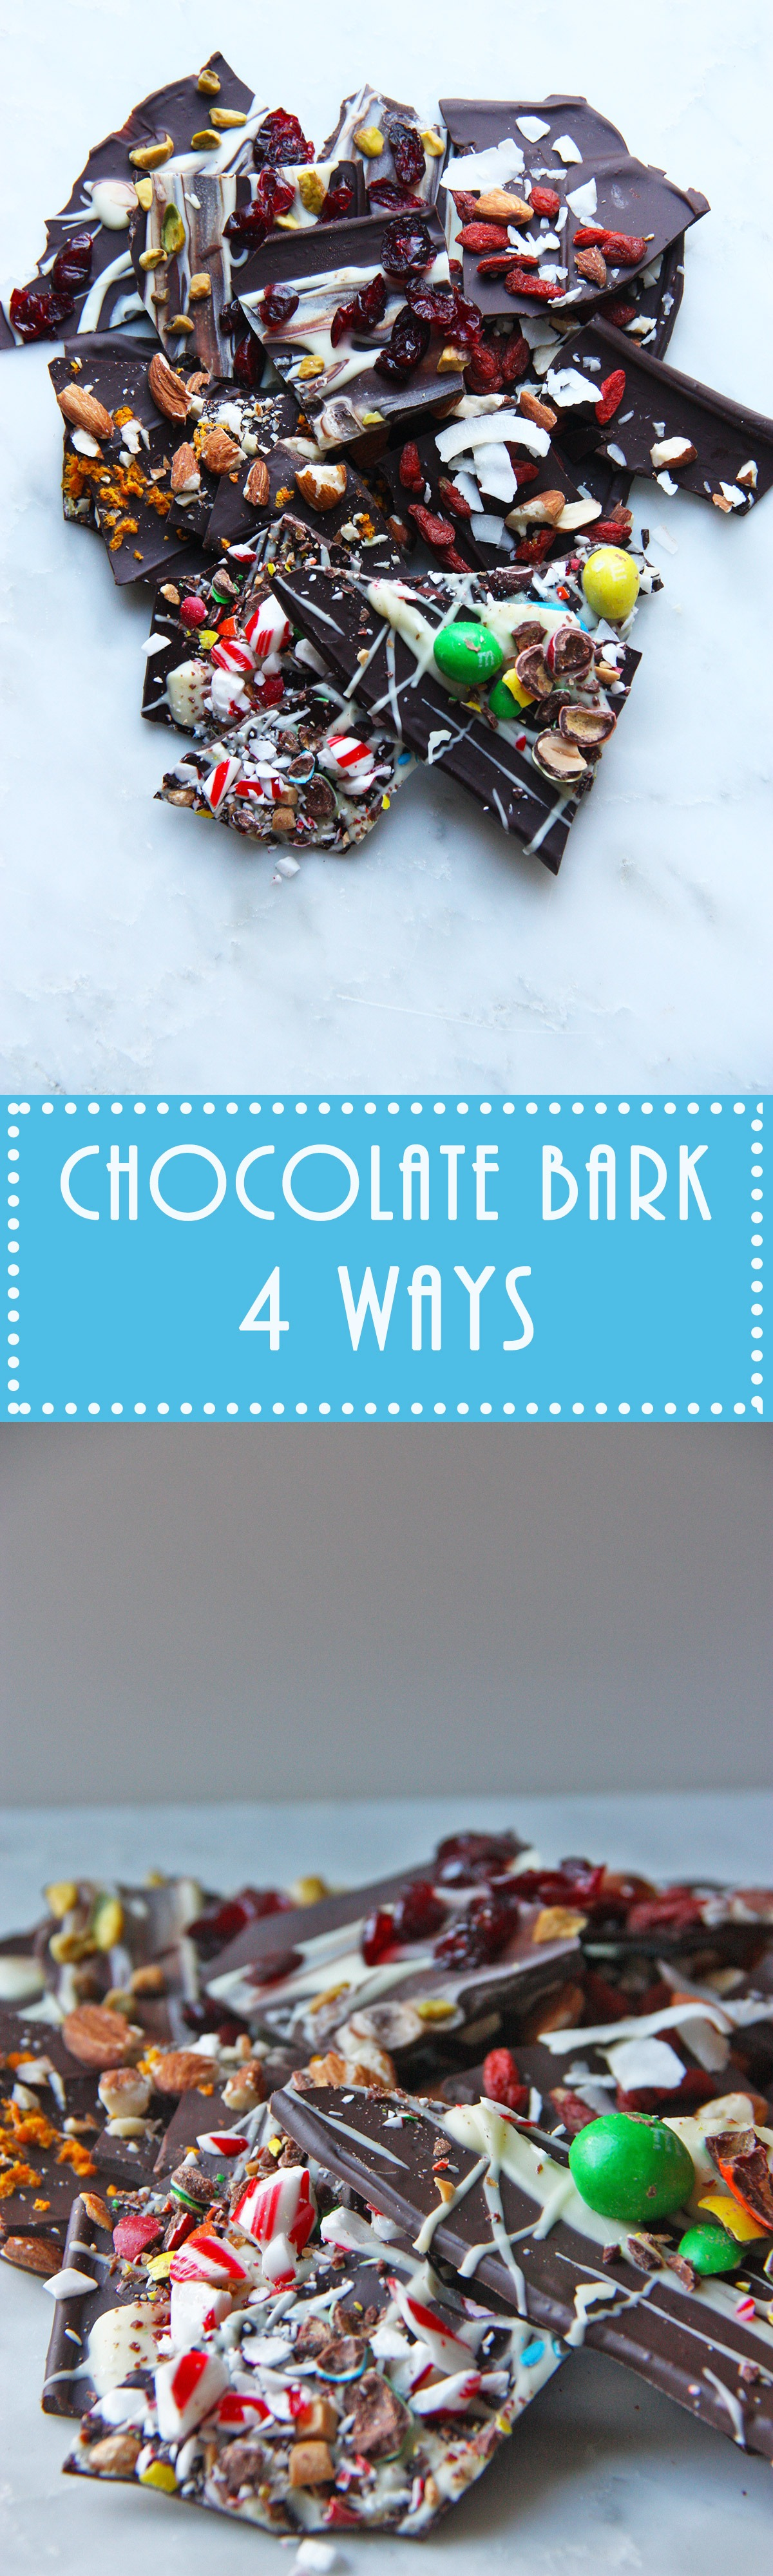 chocolate bark four ways www.thehomecookskitchen.com so easy to make! And totally customisable! Make it for a gift, or as a quick dessert option!